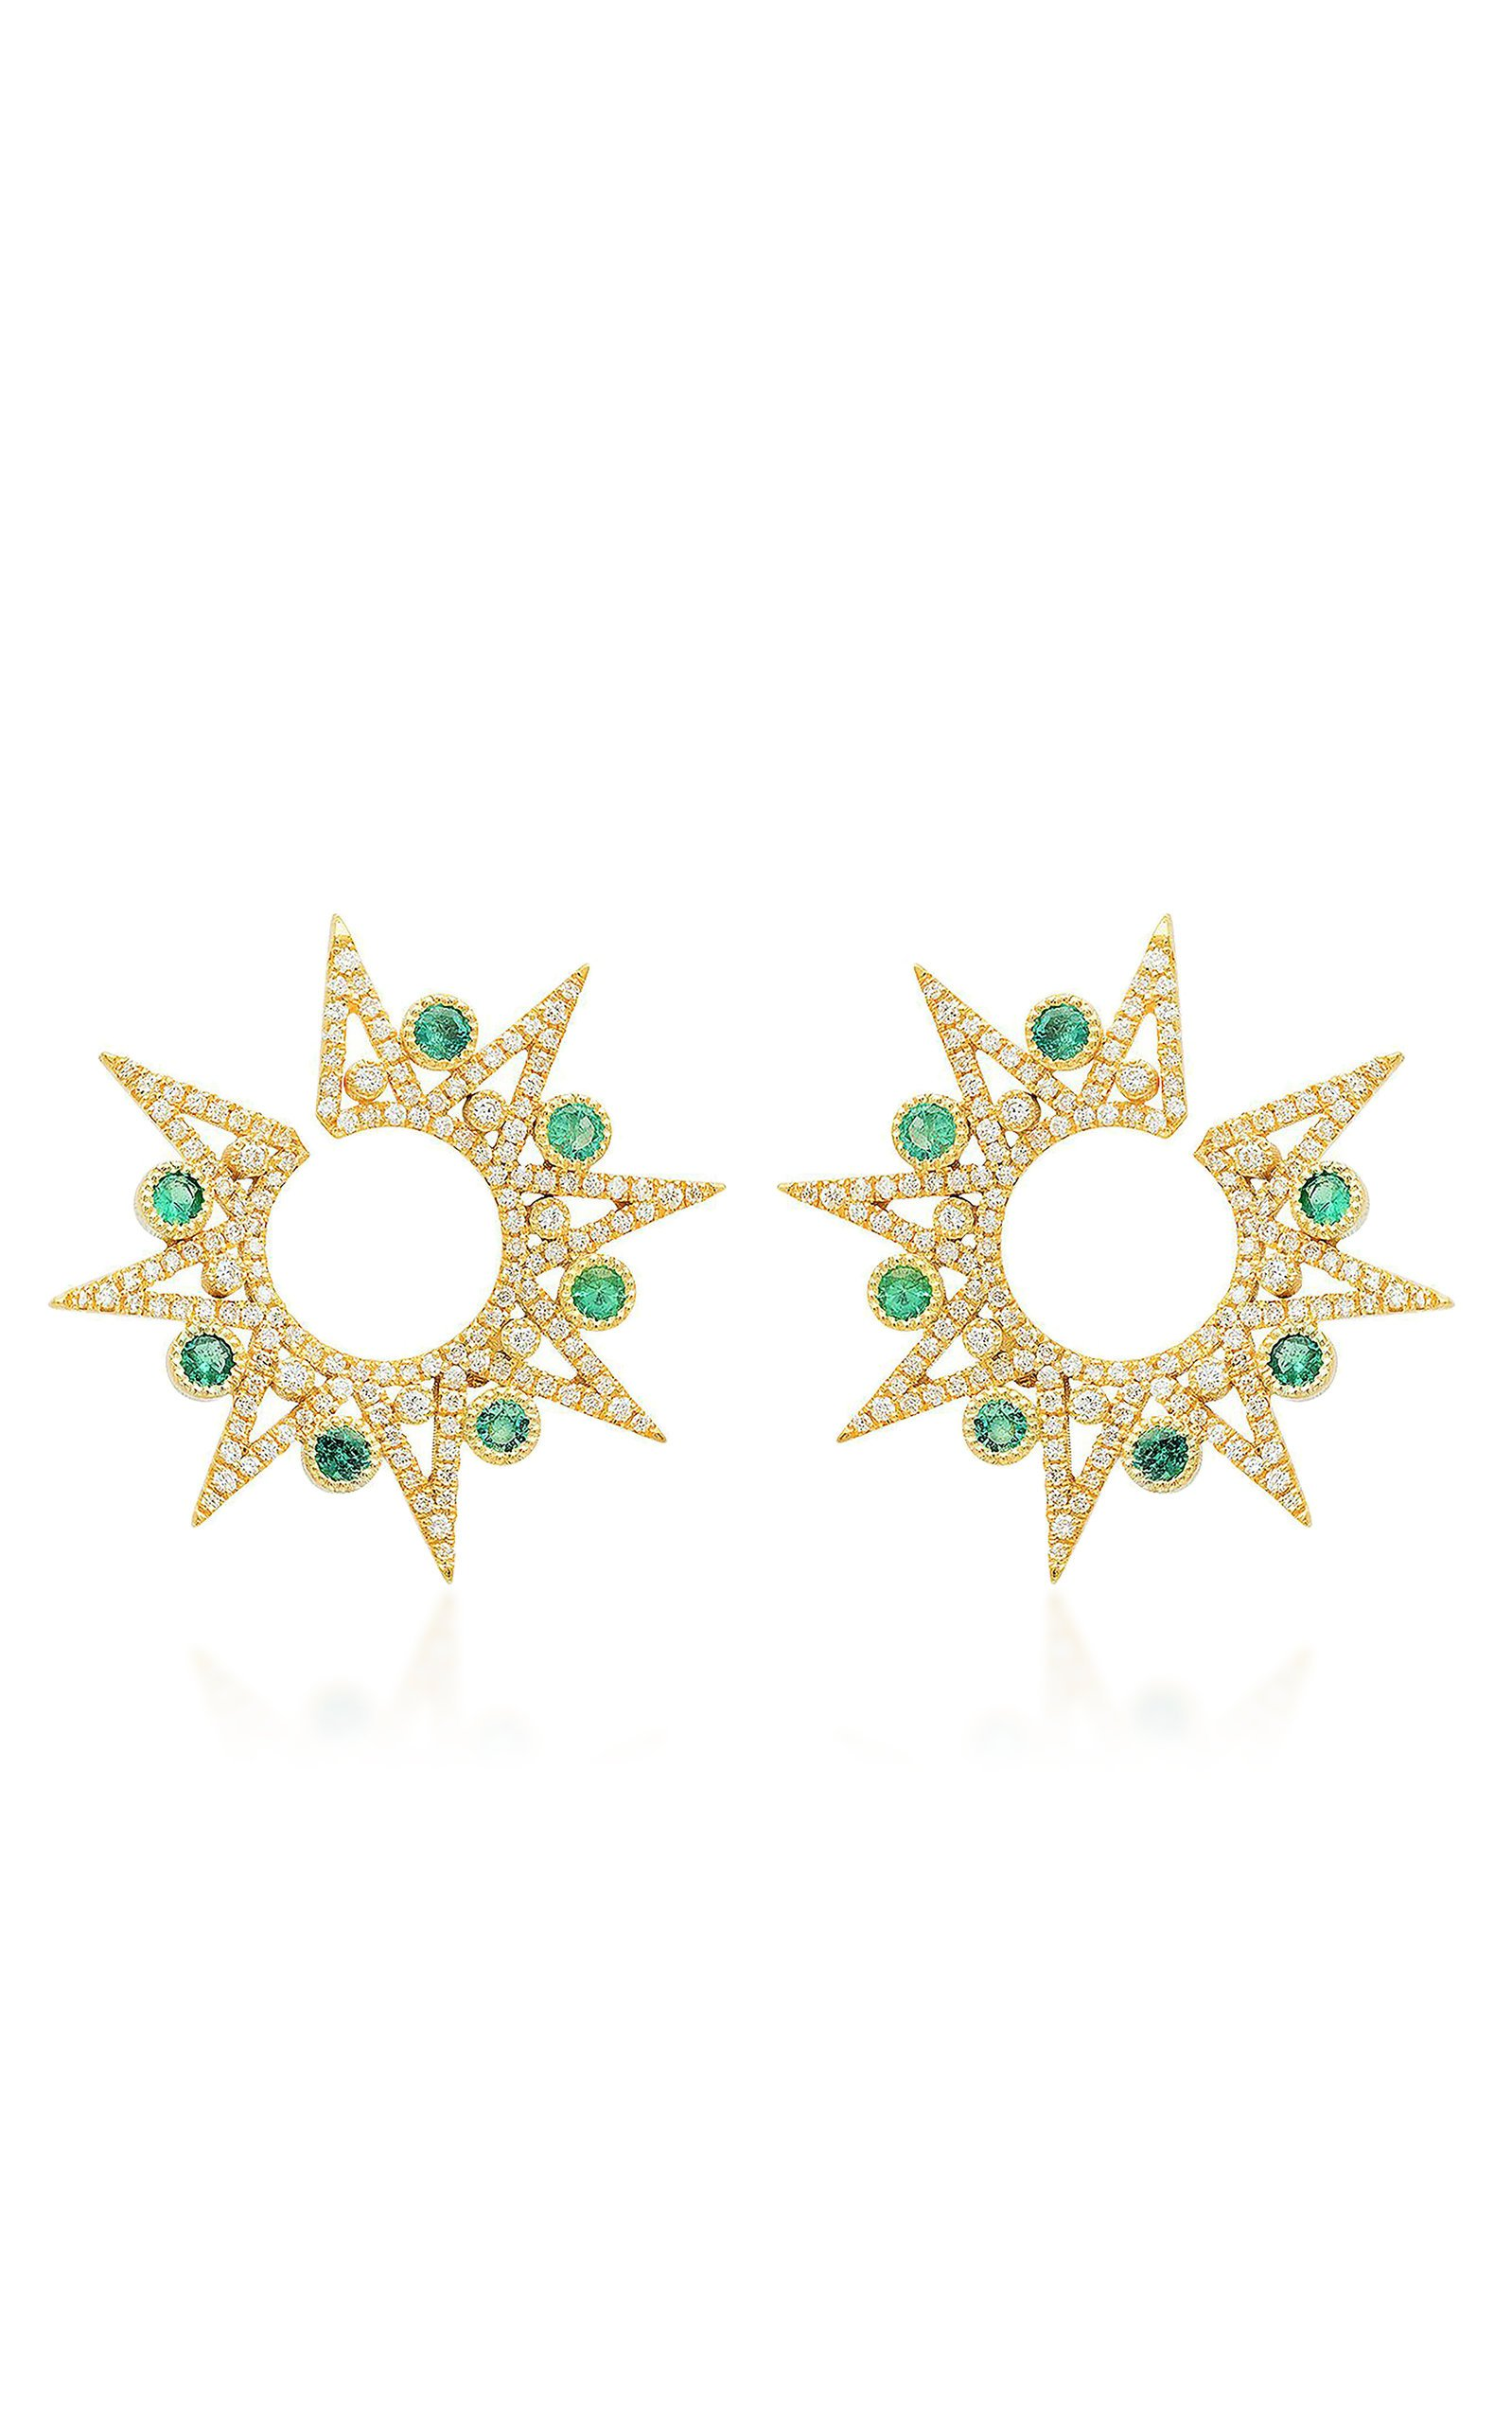 Colette Jewelry 18K Gold Diamond And Emerald Earrings